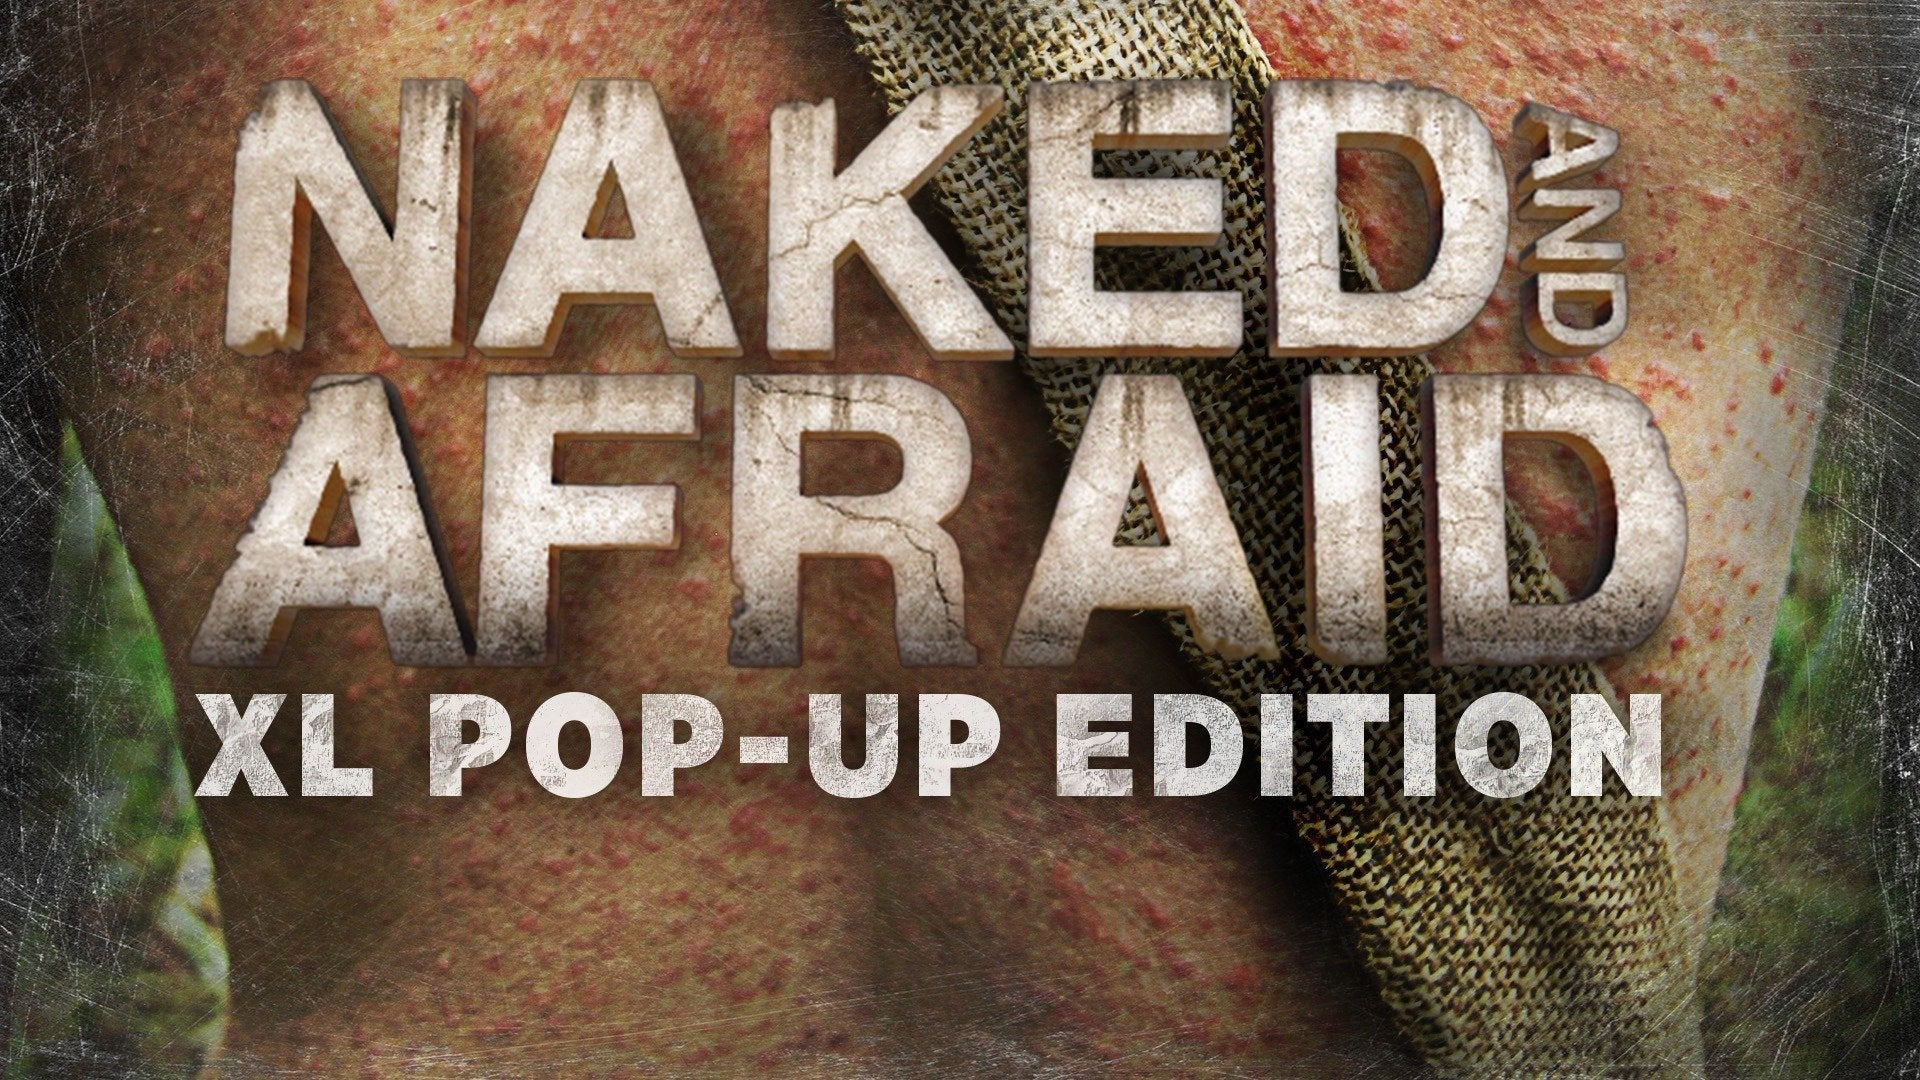 Naked and Afraid XL Pop-Up Edition